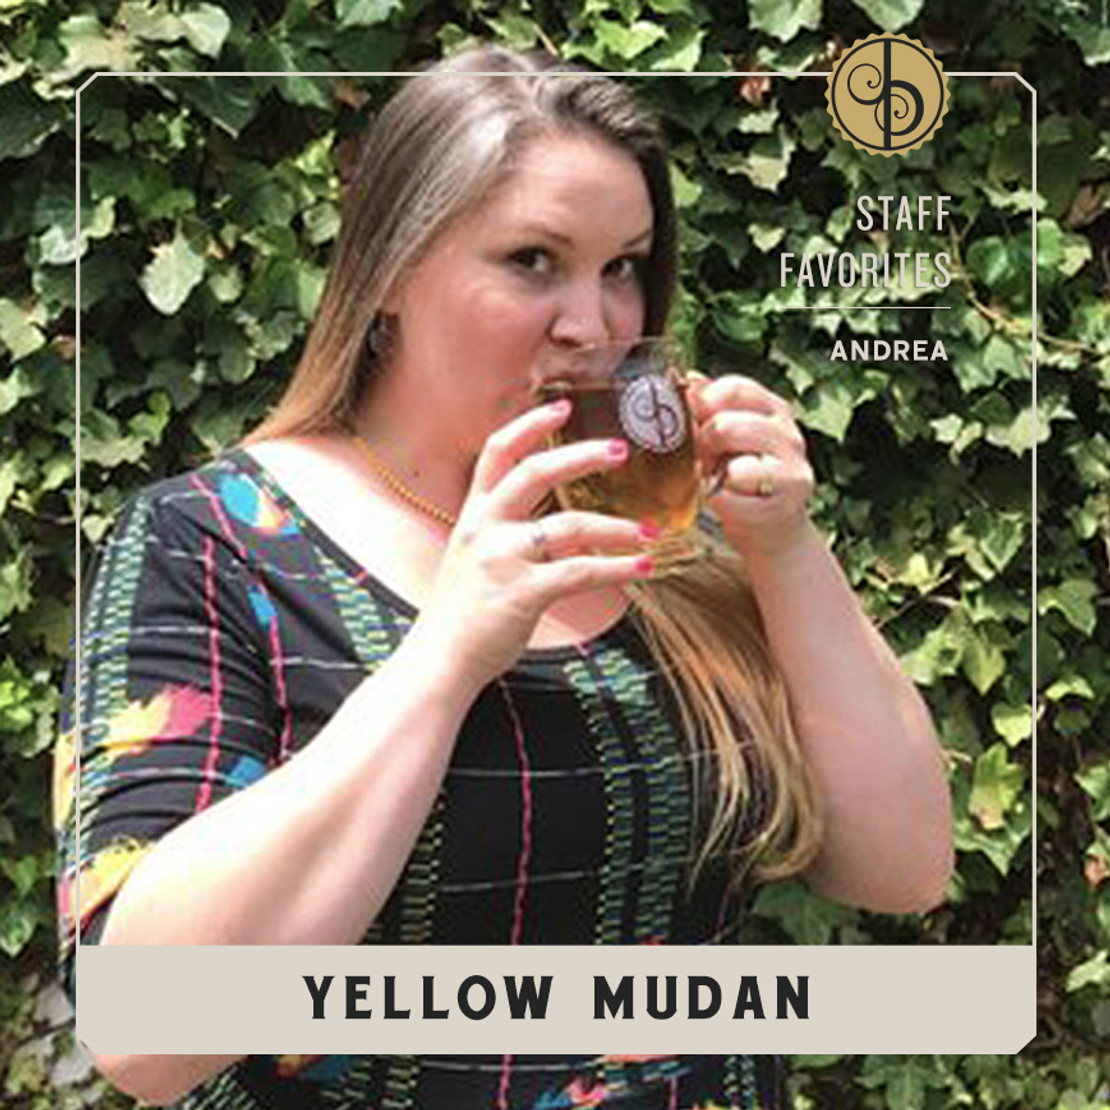 Staff Favorites: Andrea & Yellow Mudan